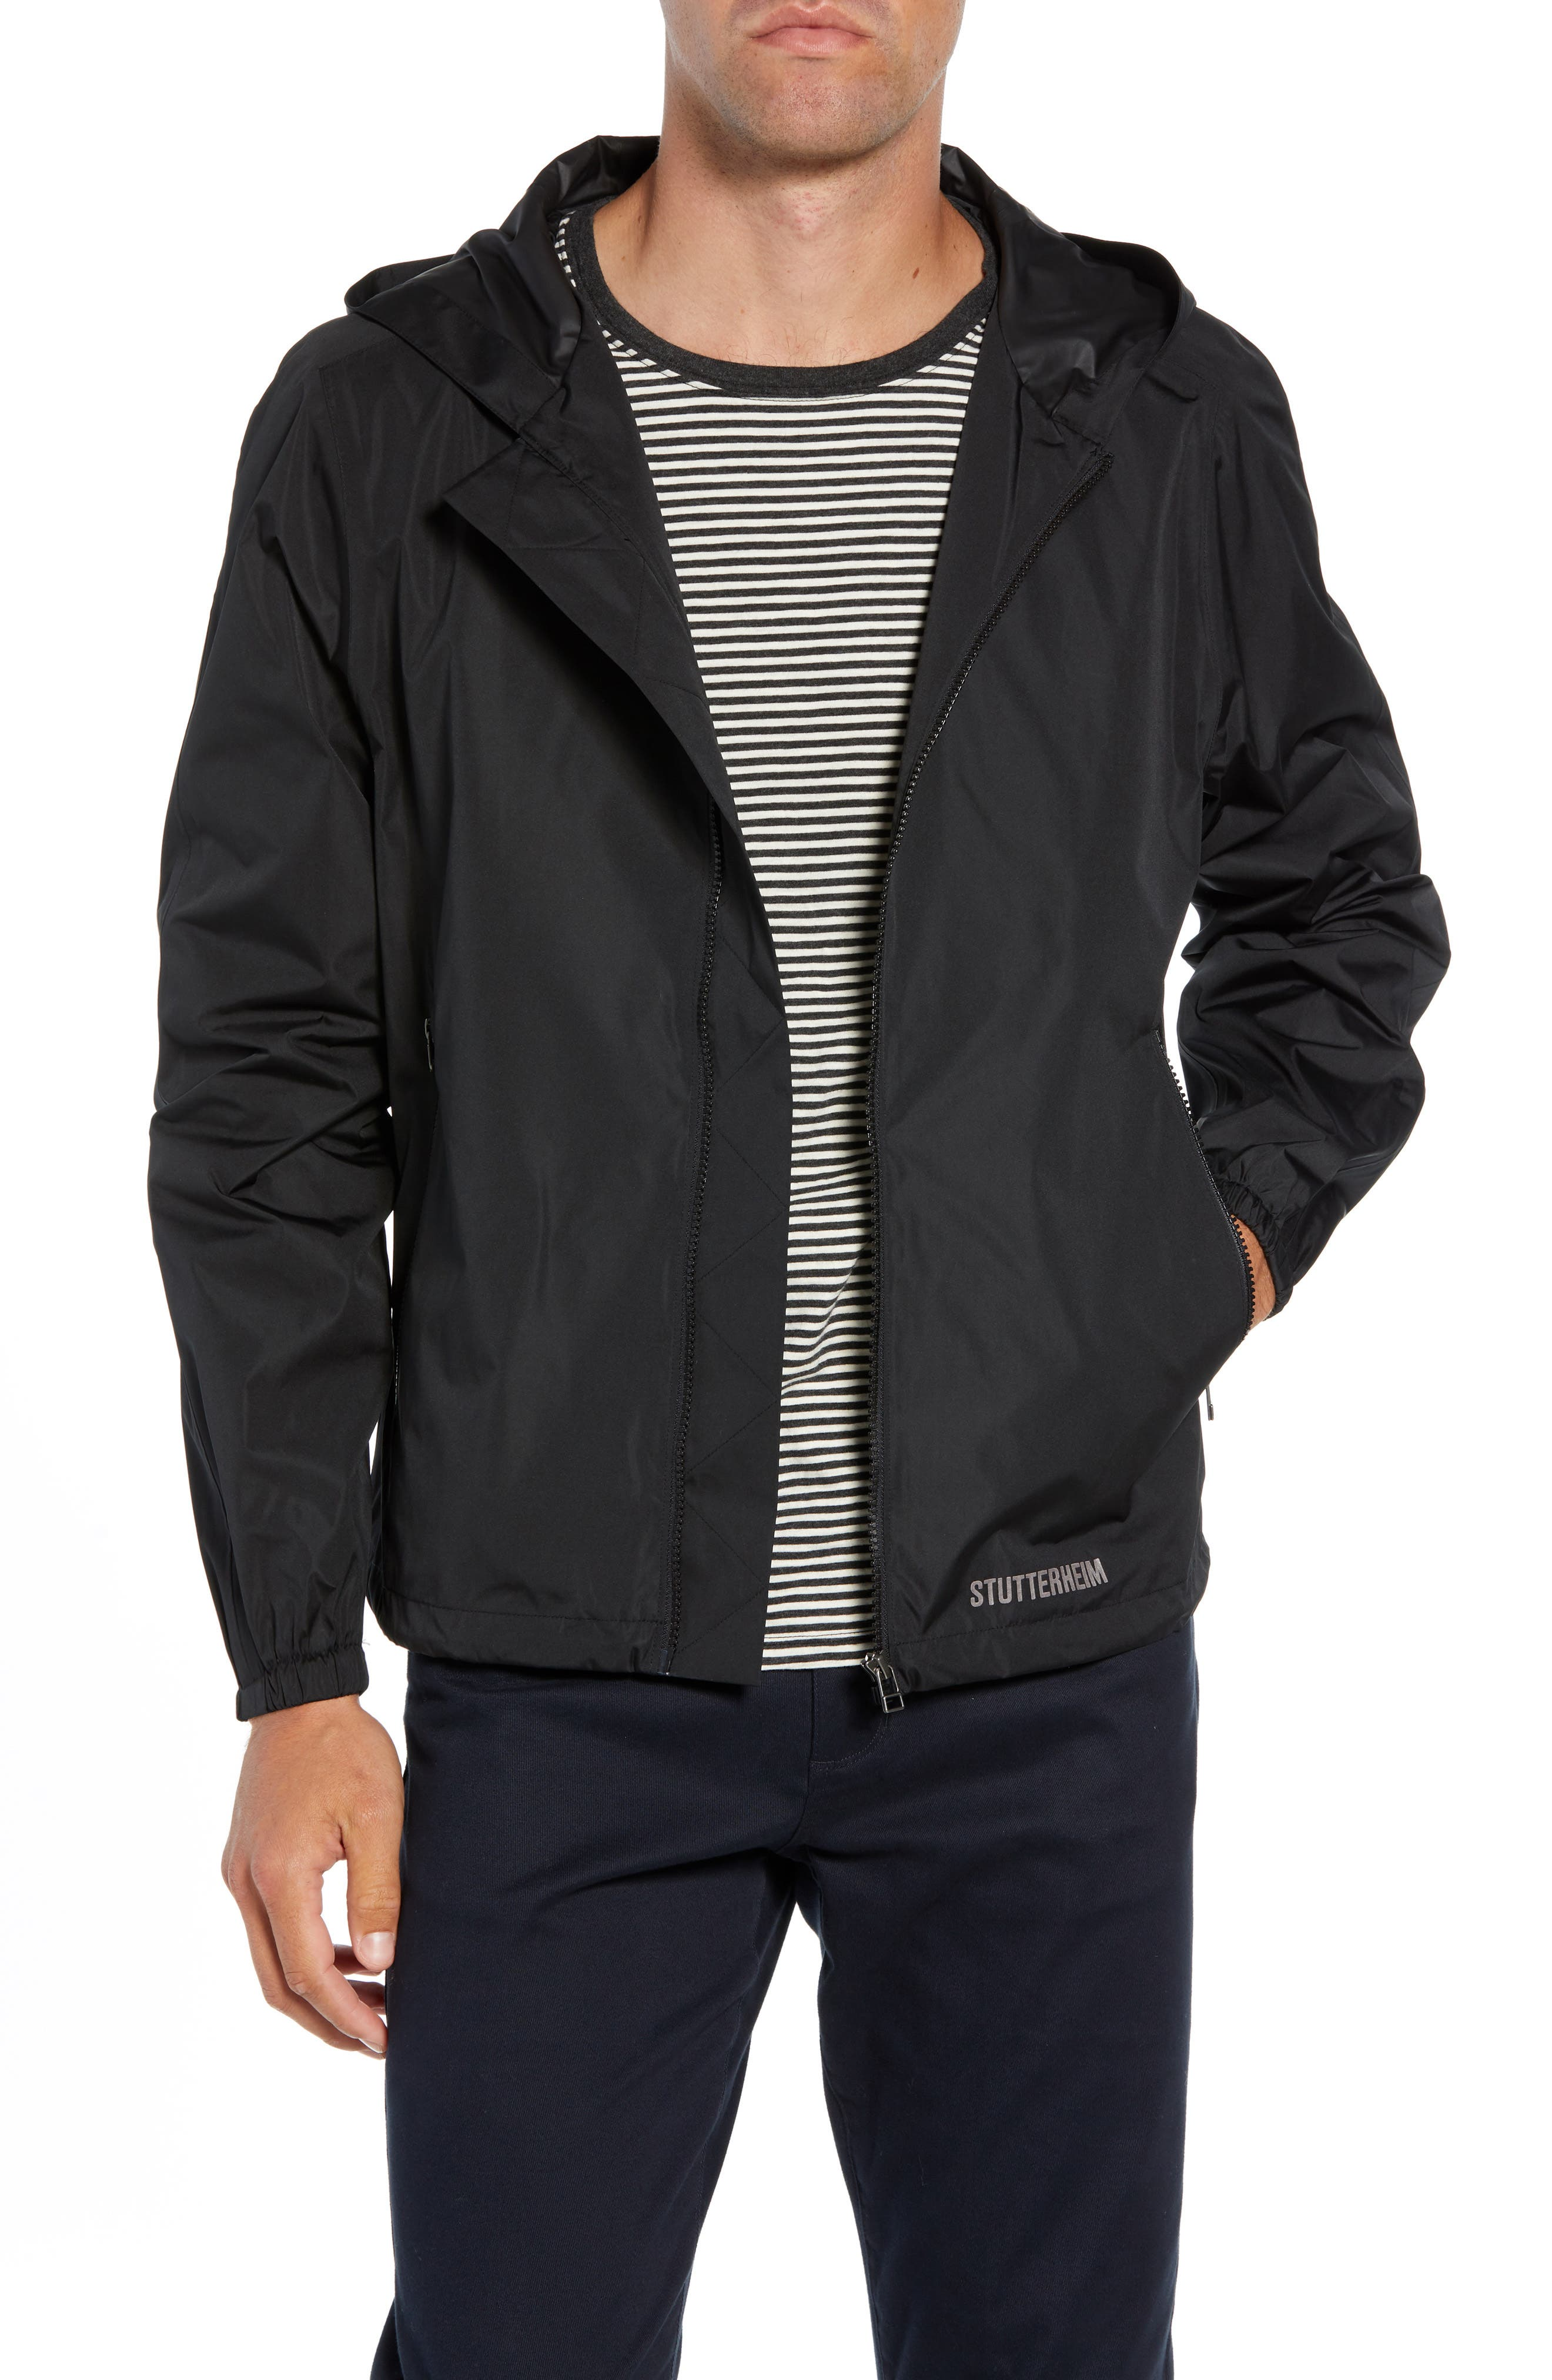 Starby Rain Jacket,                         Main,                         color, BLACK